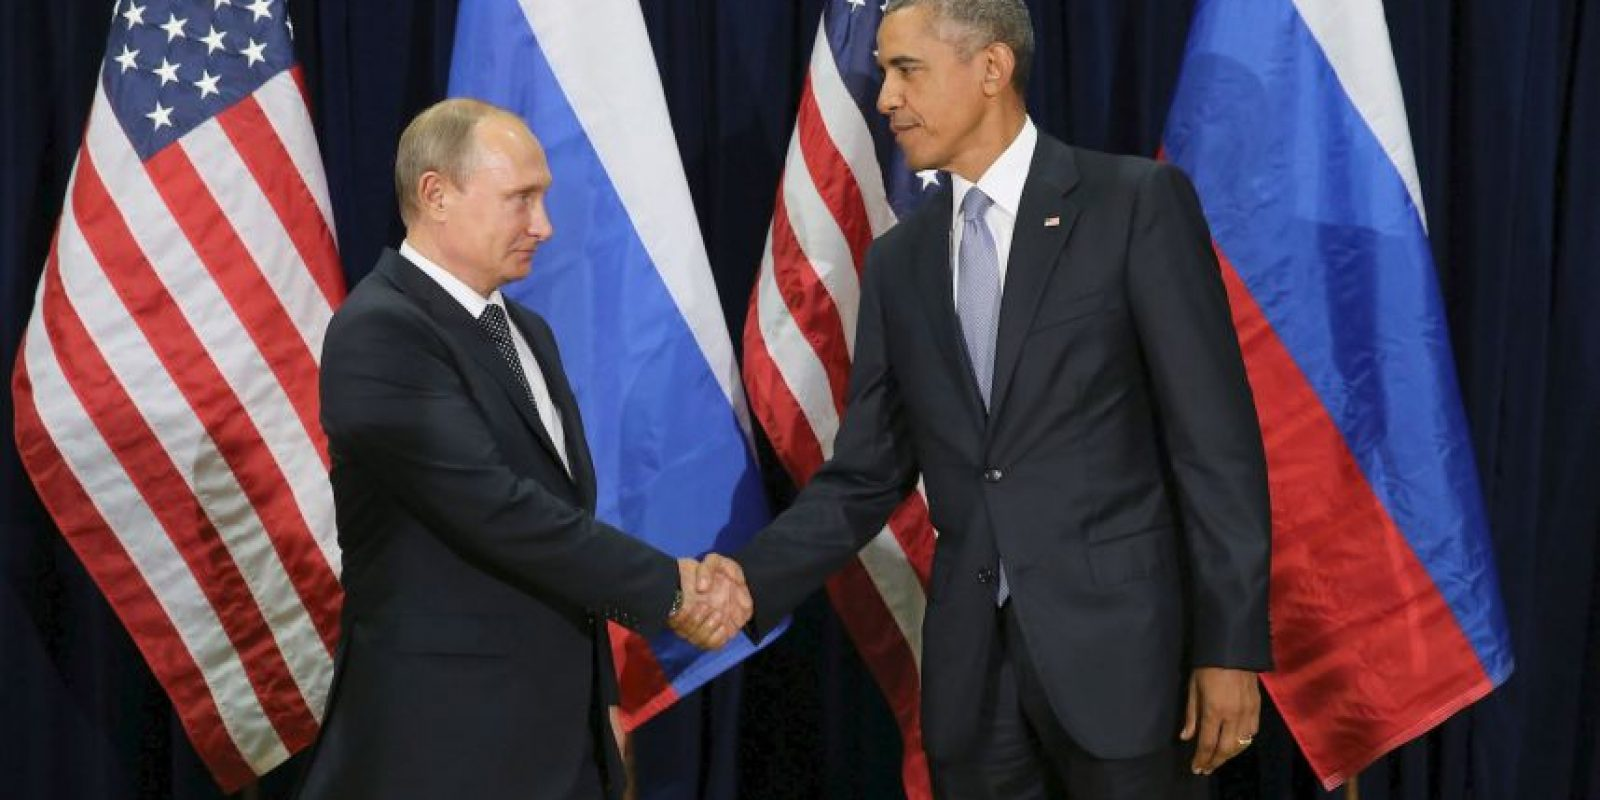 Donald Trump cree que Putin es mejor líder que Obama. Foto: Getty Images